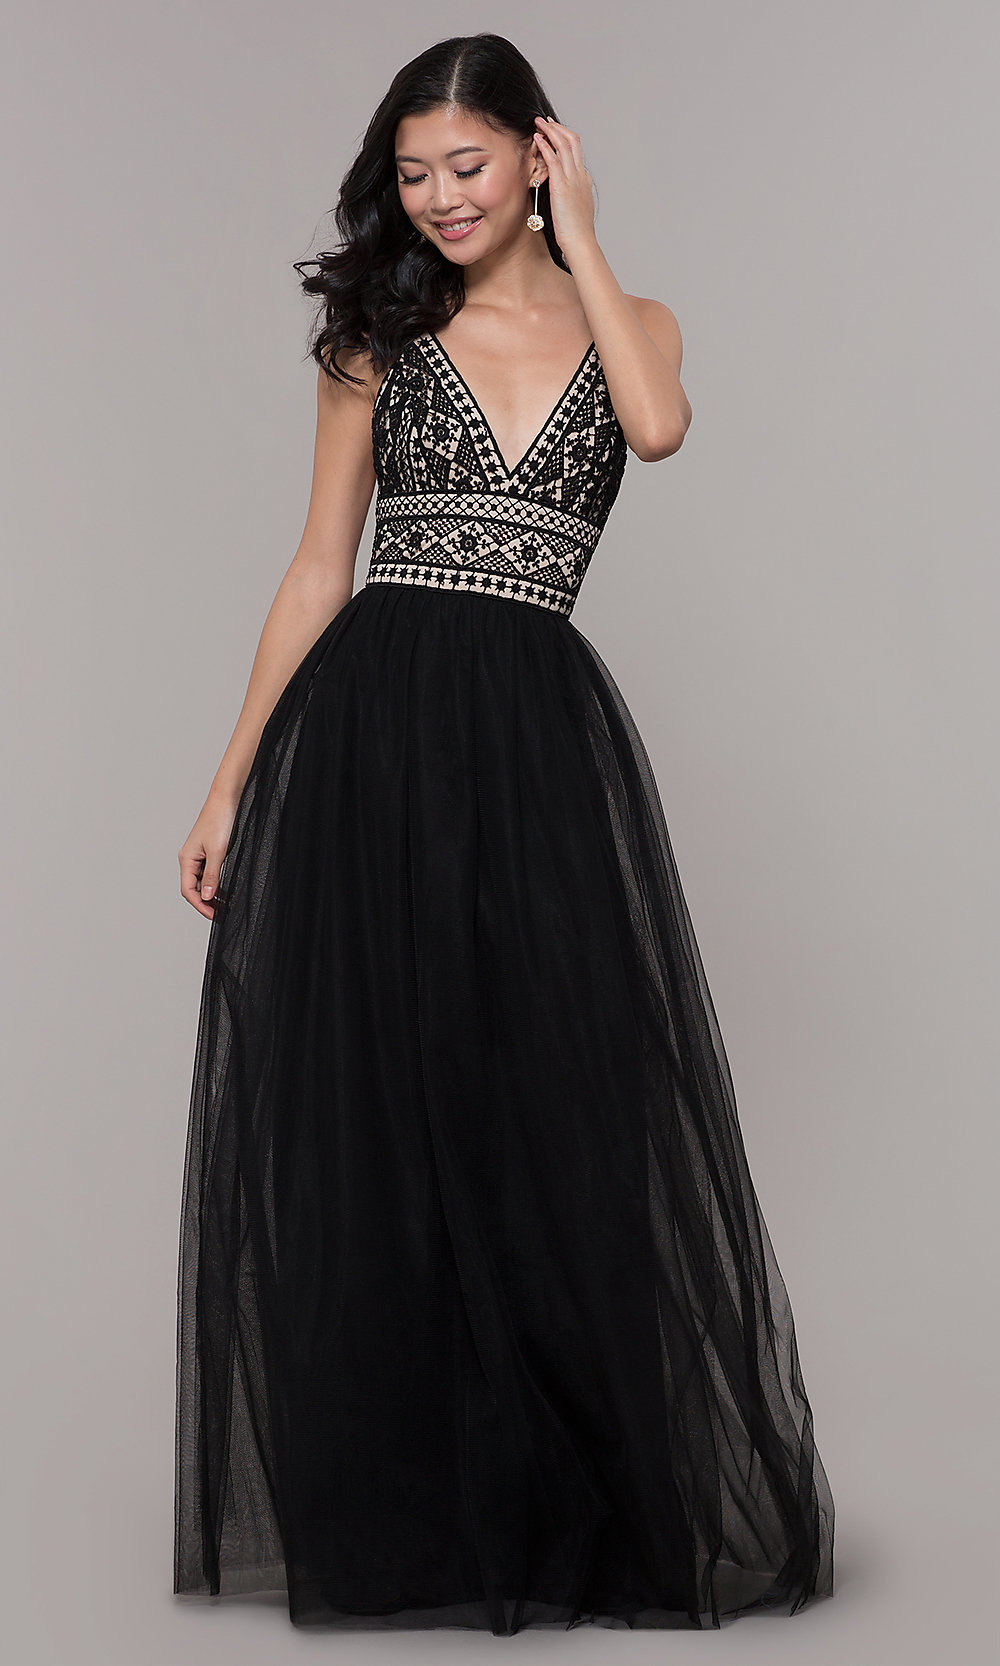 e332c0eda8 Tulle Long Prom Dress with Crocheted Lace Bodice